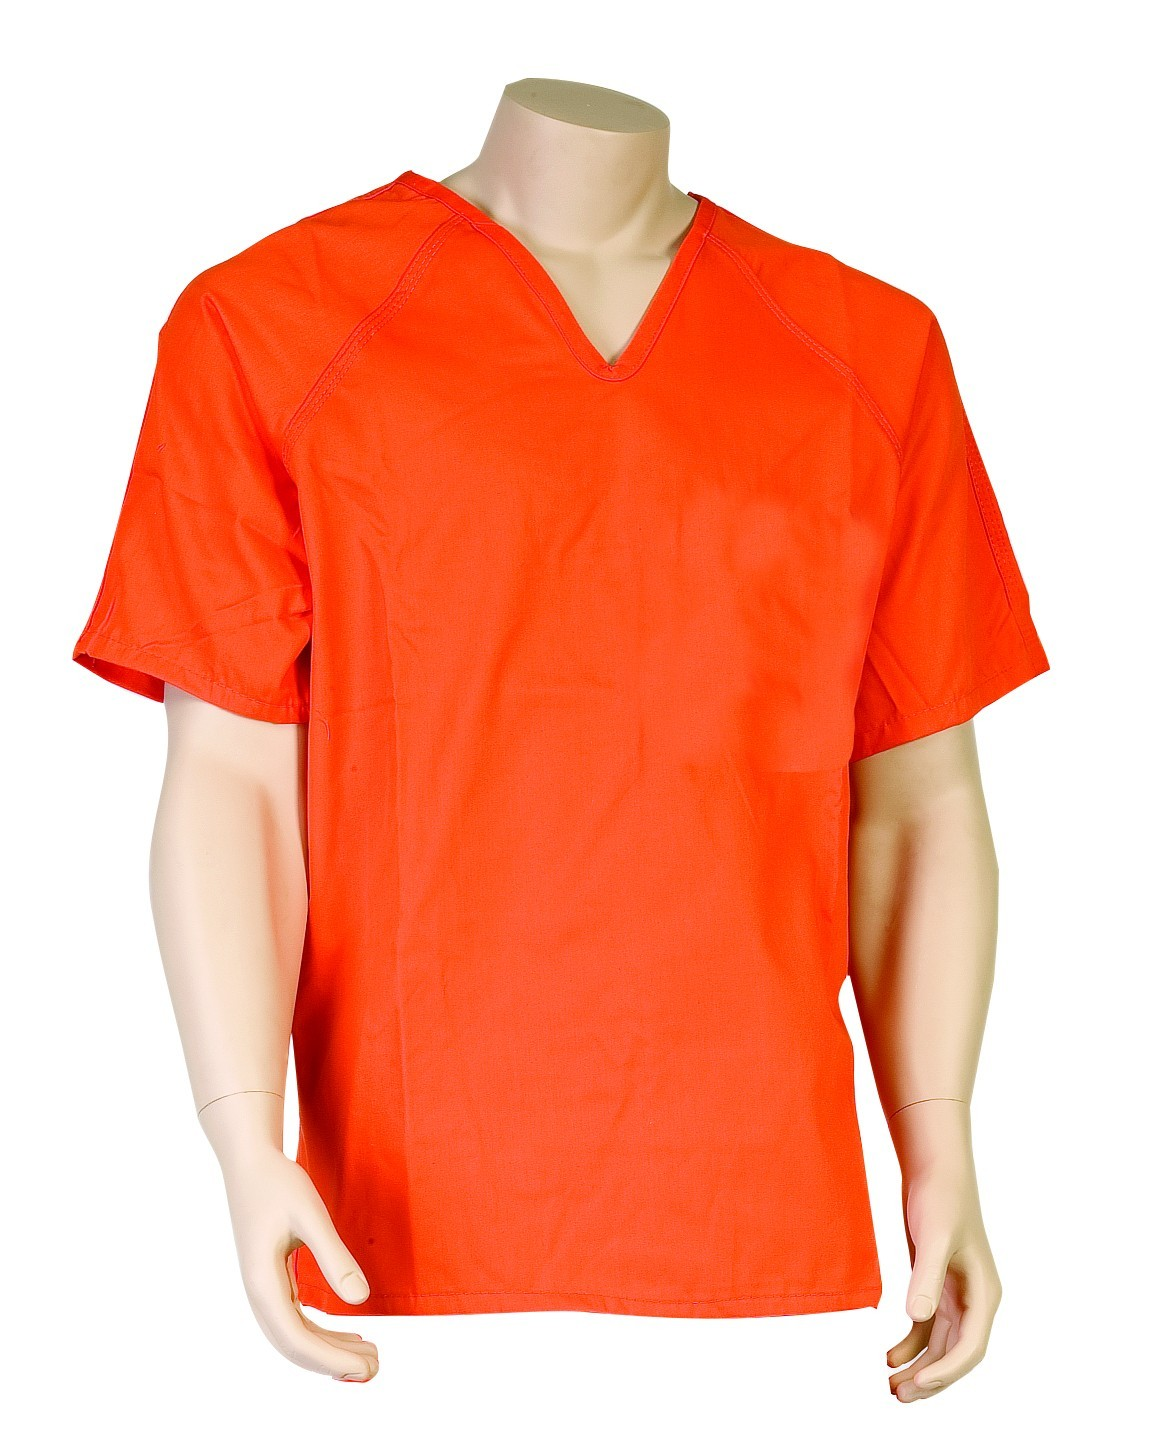 Solid Color Inmate Shirts Without Pockets